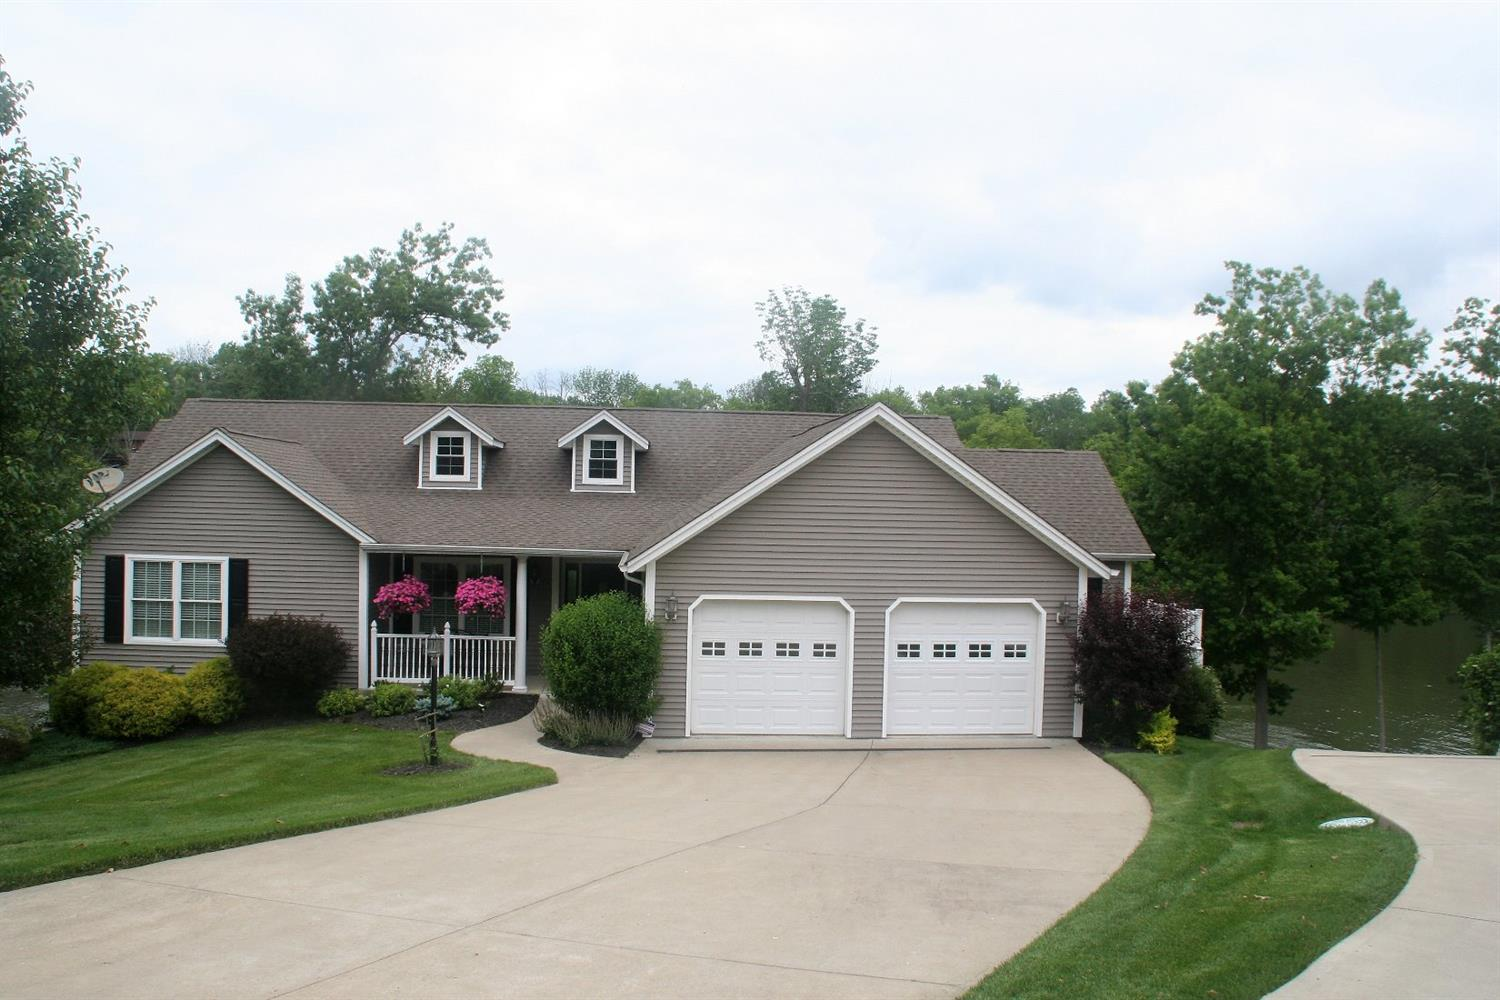 Photo 1 for 20244 Cedar Cliff Dr Miller Twp, IN 47025